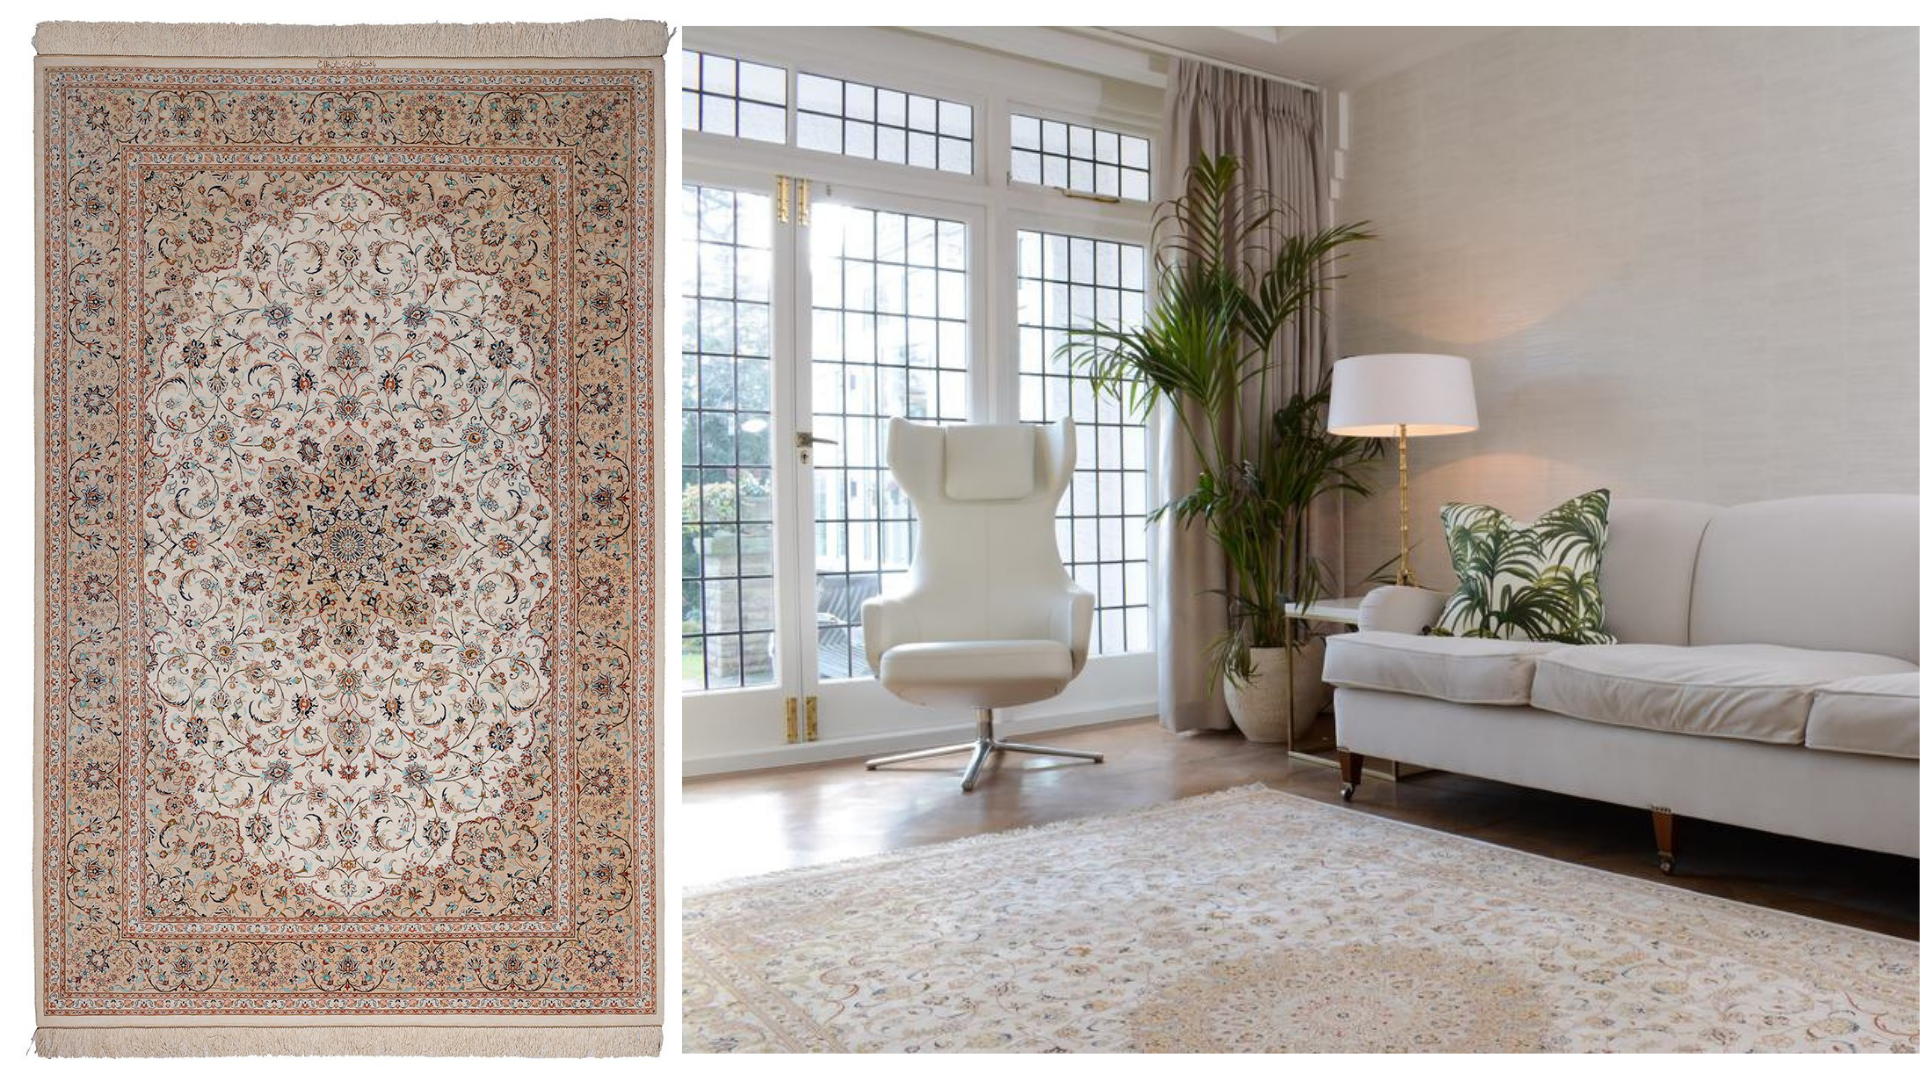 persian rugs, oriental rugs, home decor, home accessories, interior design, design ideas, interior designers, summer rugs, best rugs for summer, decor trends, london rugs, uk rug collections